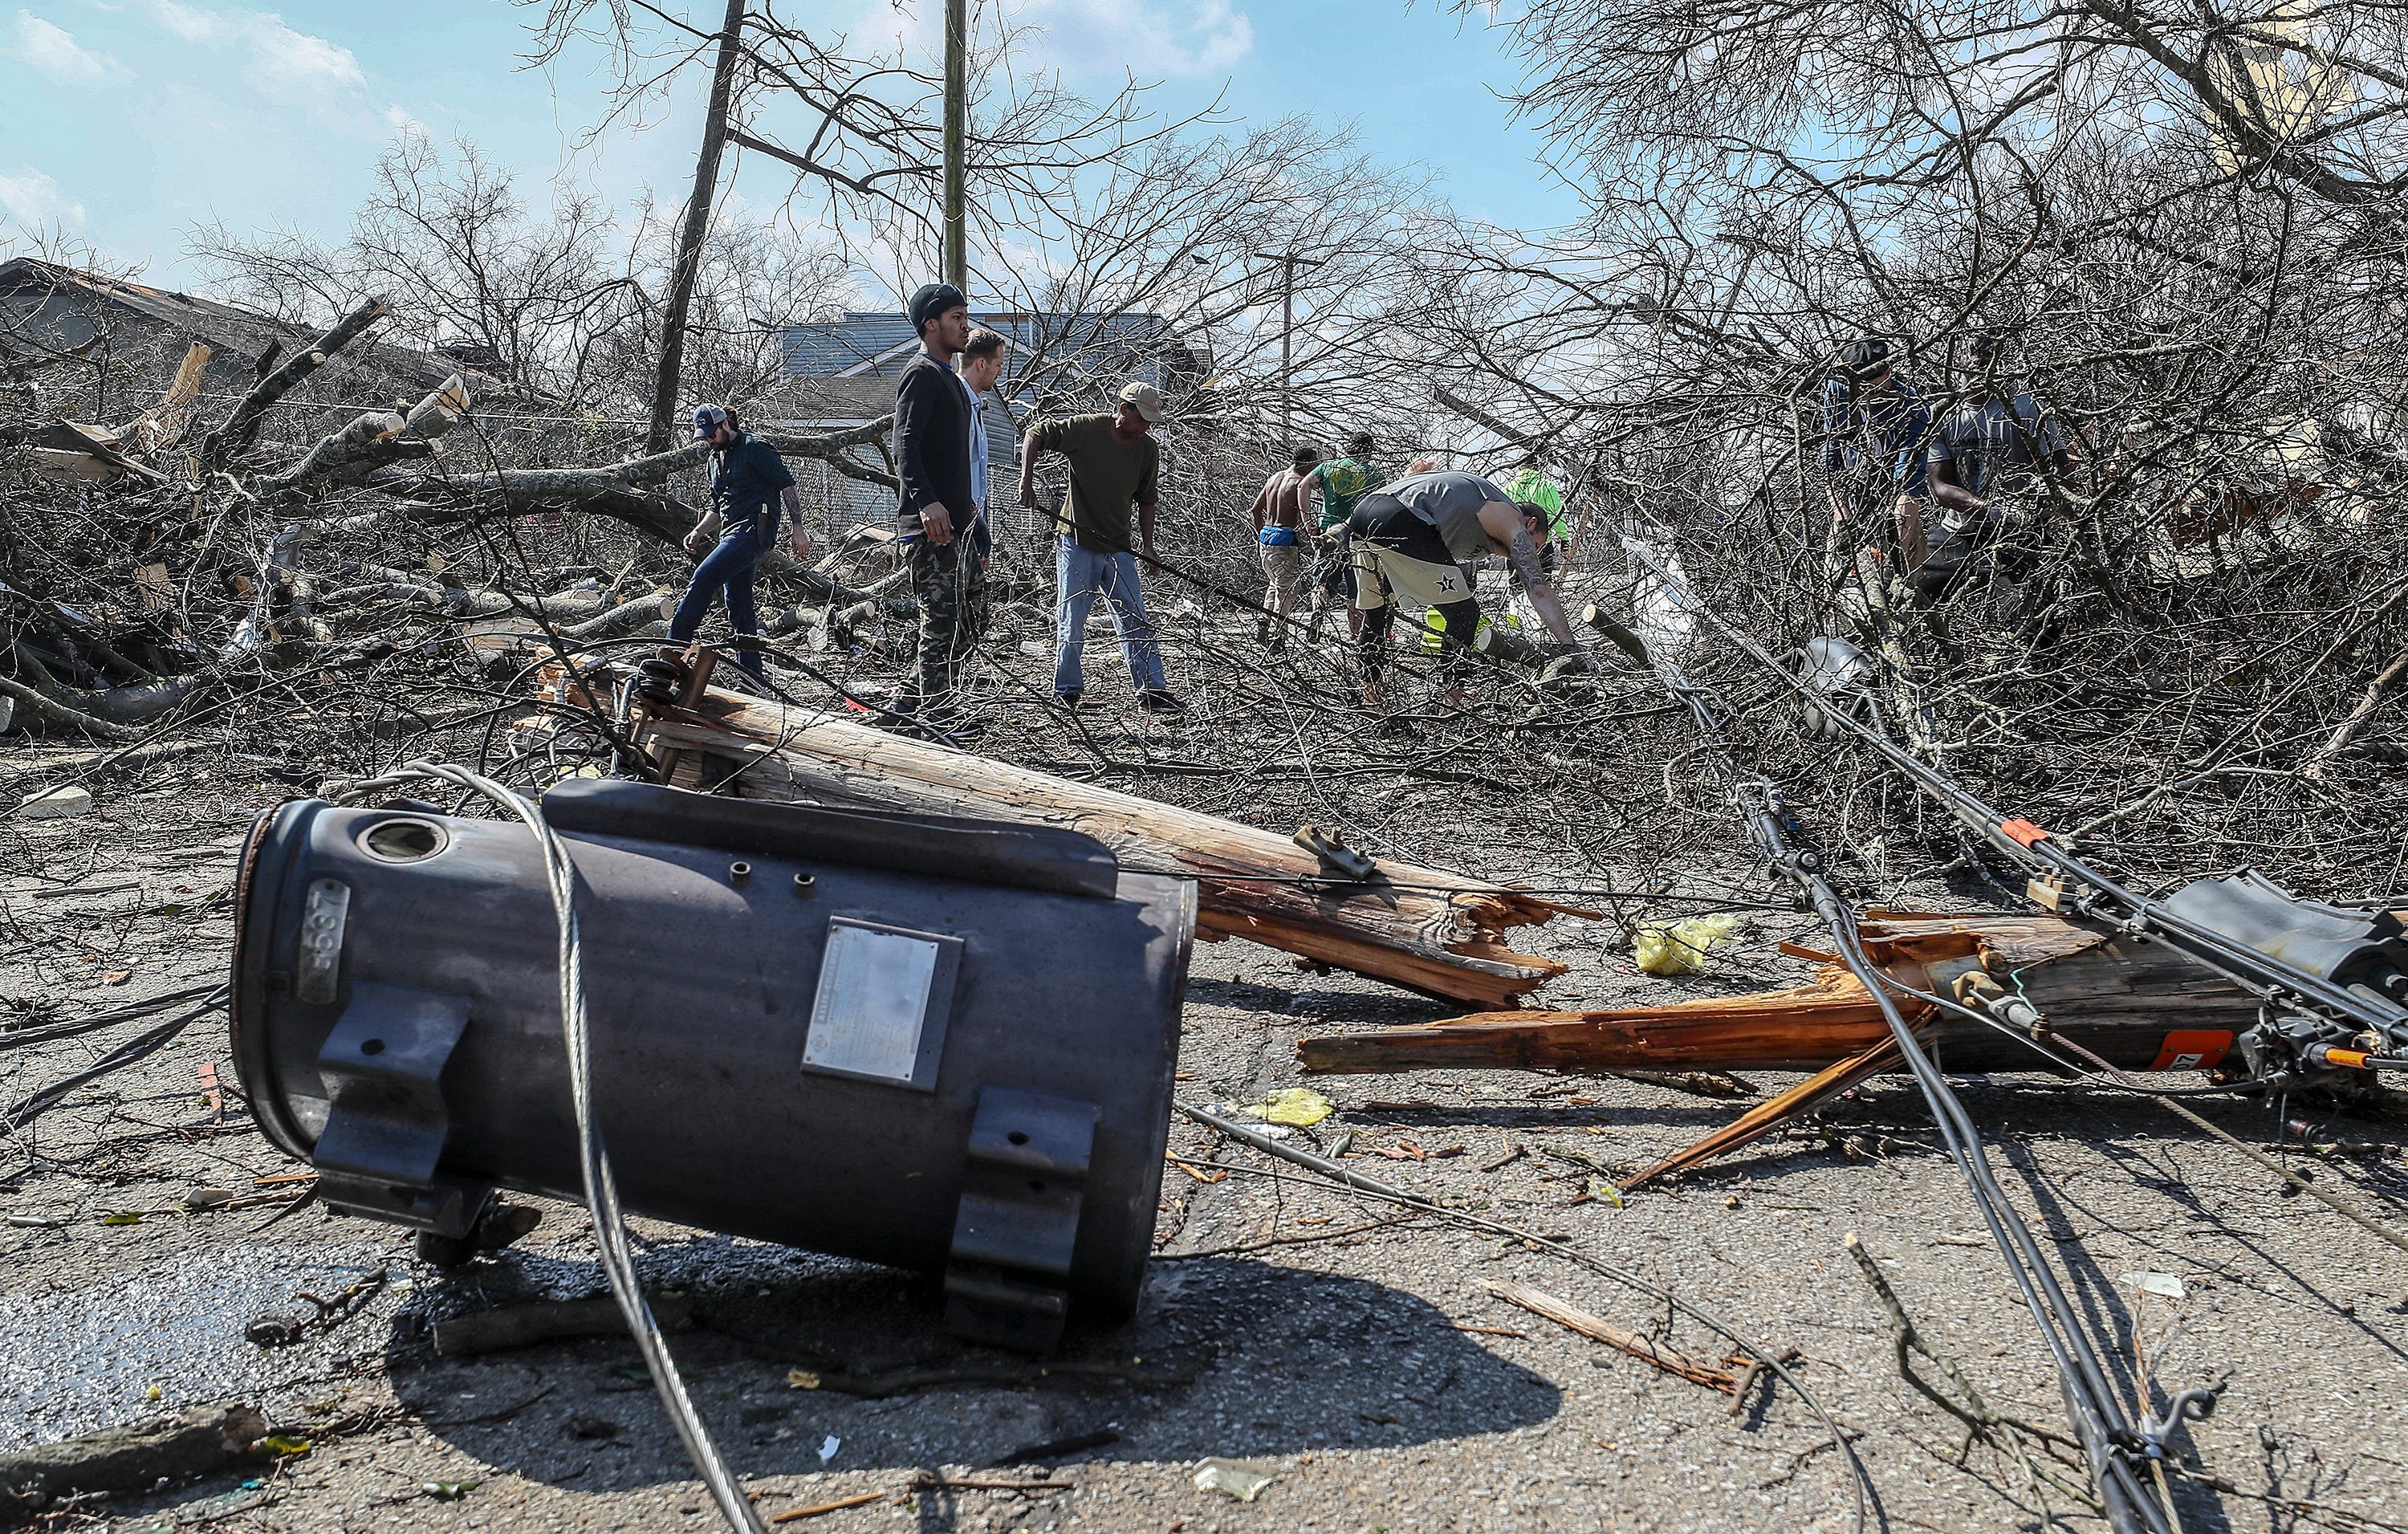 Residents, friends and volunteers work to clear the debris along Cockrill Street in North Nashville on March 3, 2020.